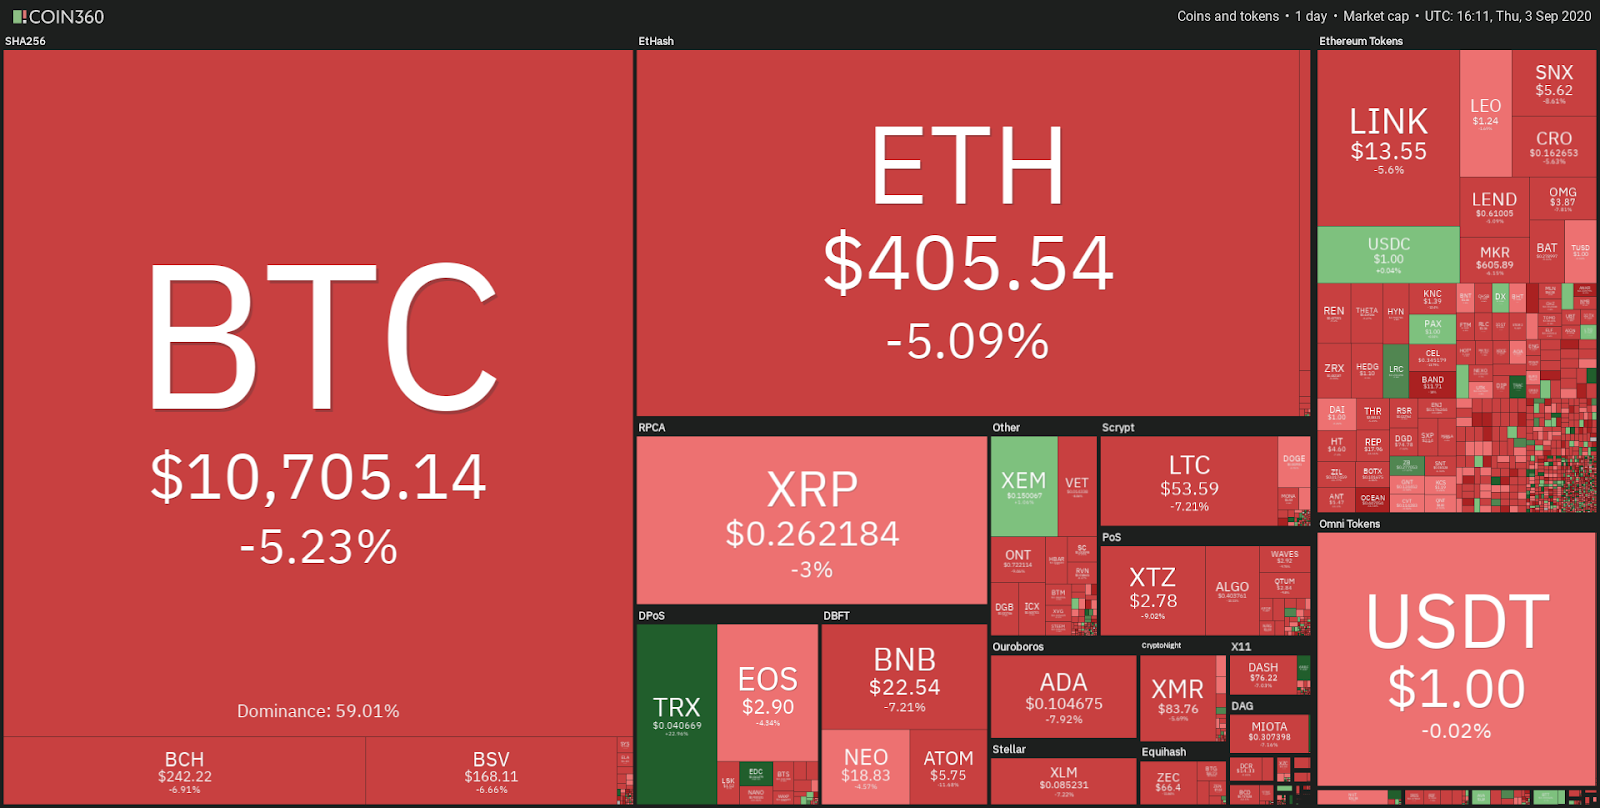 Crypto market daily performance snapshot. Source: Coin360